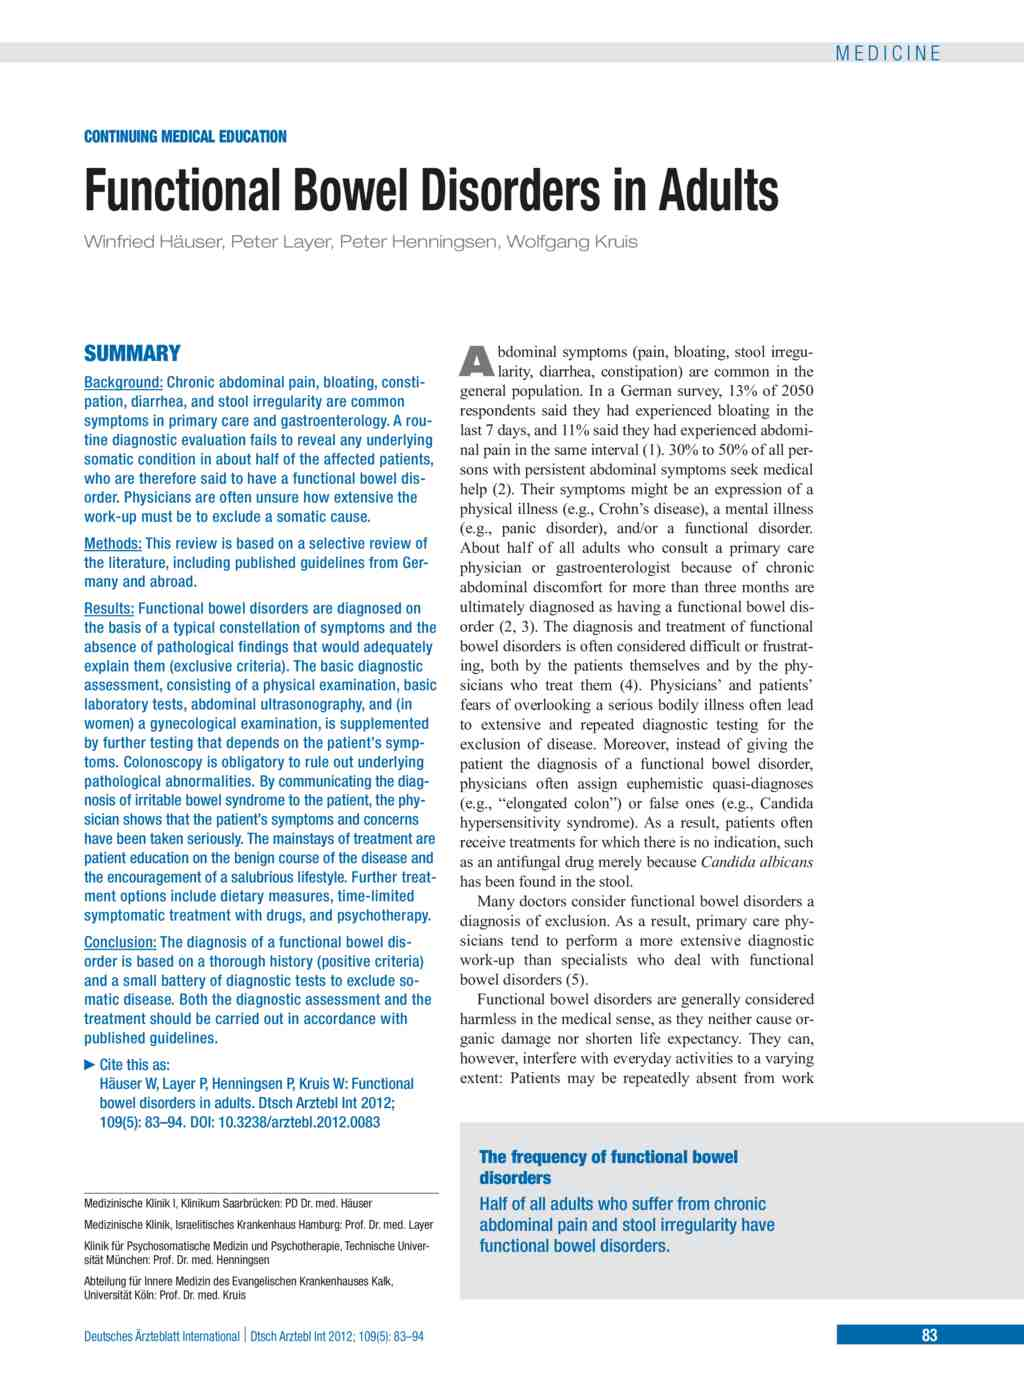 Causes and symptoms of adnexitis, methods of treatment of pathology